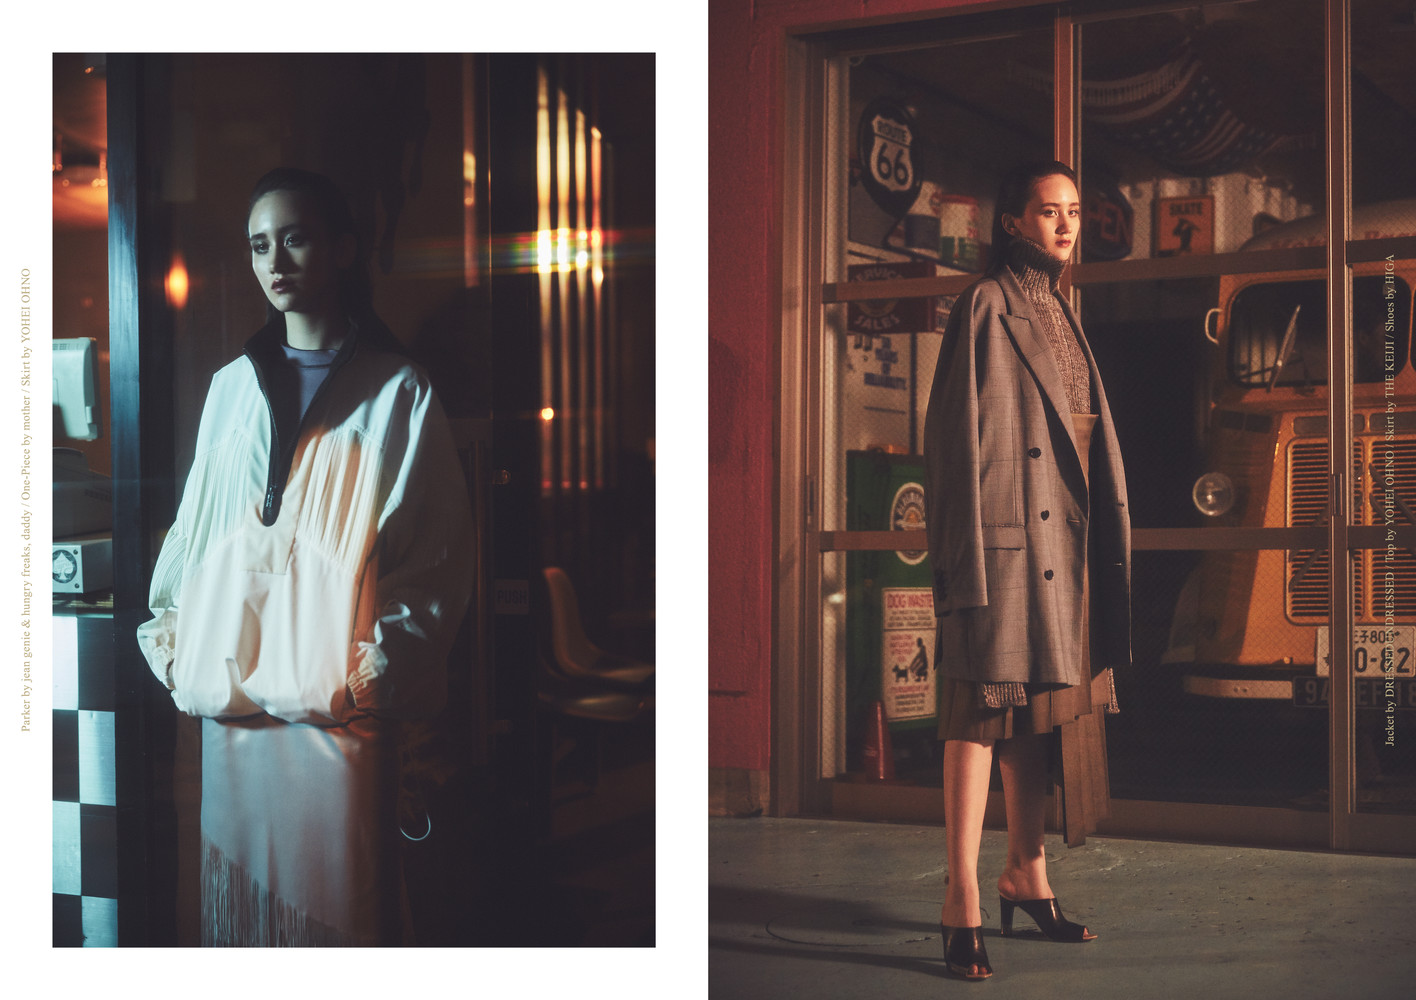 Left page: Parker_jean genie & hungry freaks, daddy One-Piece_mother Skirt_YOHEI OHNO  Right page: Jacket_DRESSEDUNDRESSED Top_YOHEI OHNO Skirt_THE KEIJI Shoes_HIGA